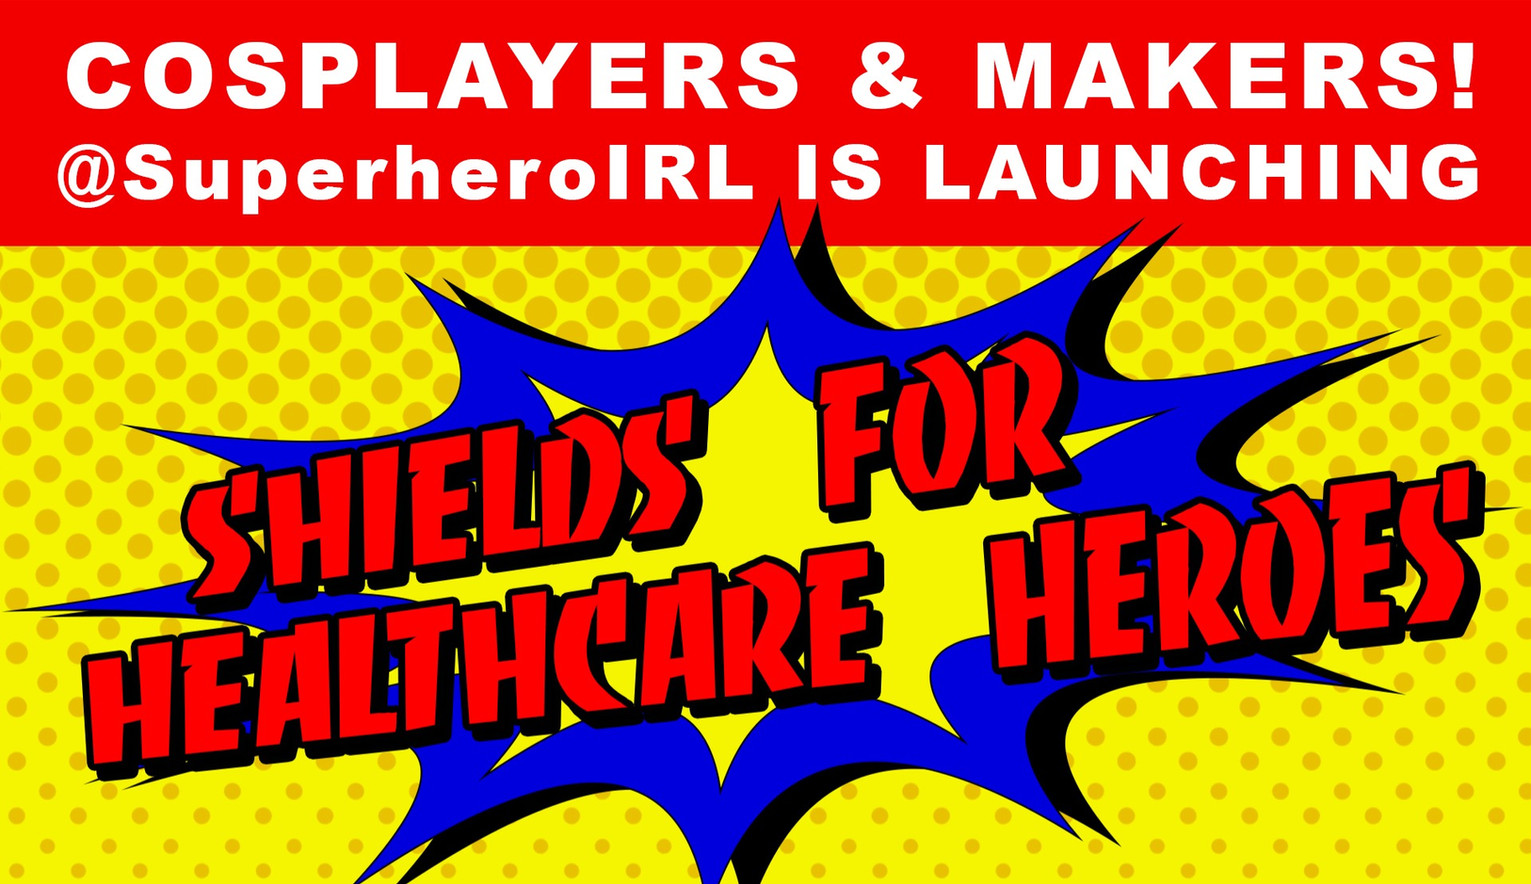 SHIELDS FOR HEALTHCARE HEROES